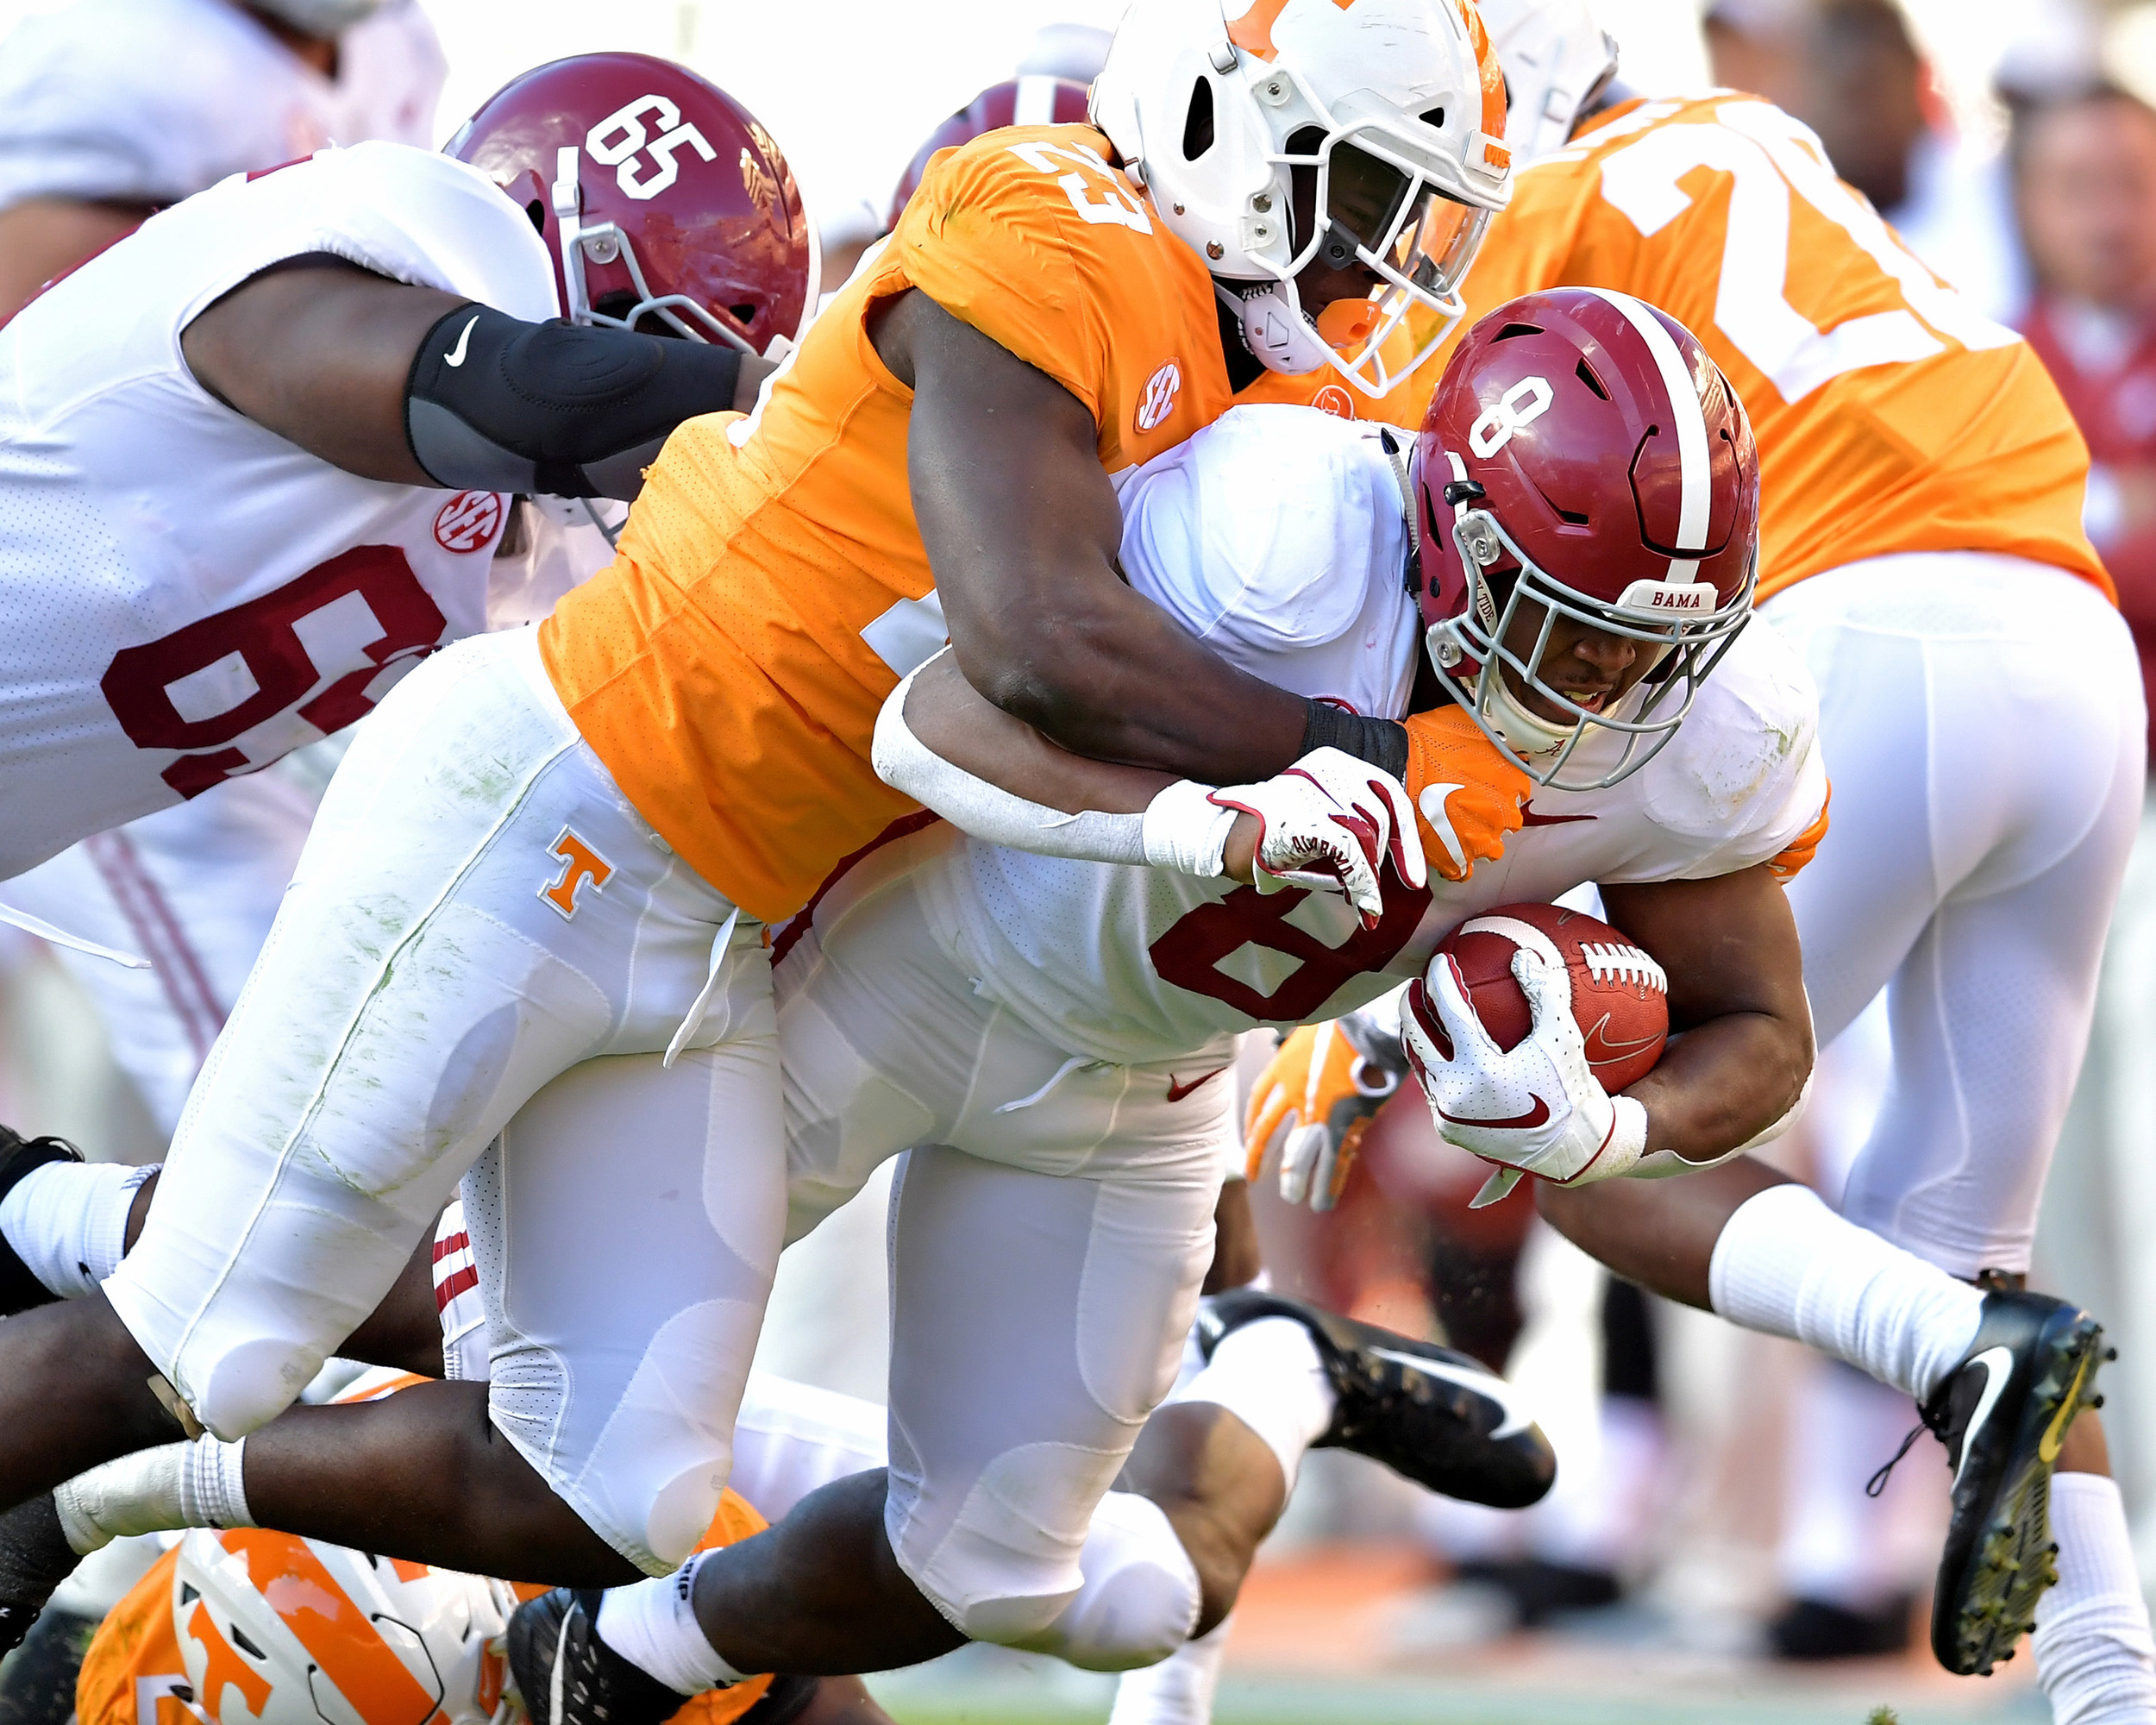 Alabama Crimson Tide running back Josh Jacobs (8) in action during the second quarter of the Alabama at Tennessee NCAA football game on Saturday, Oct. 20, 2018, at Neyland Stadium in Knoxville. Tenn. Alabama wins 58-21. (Photo by Lee Walls)